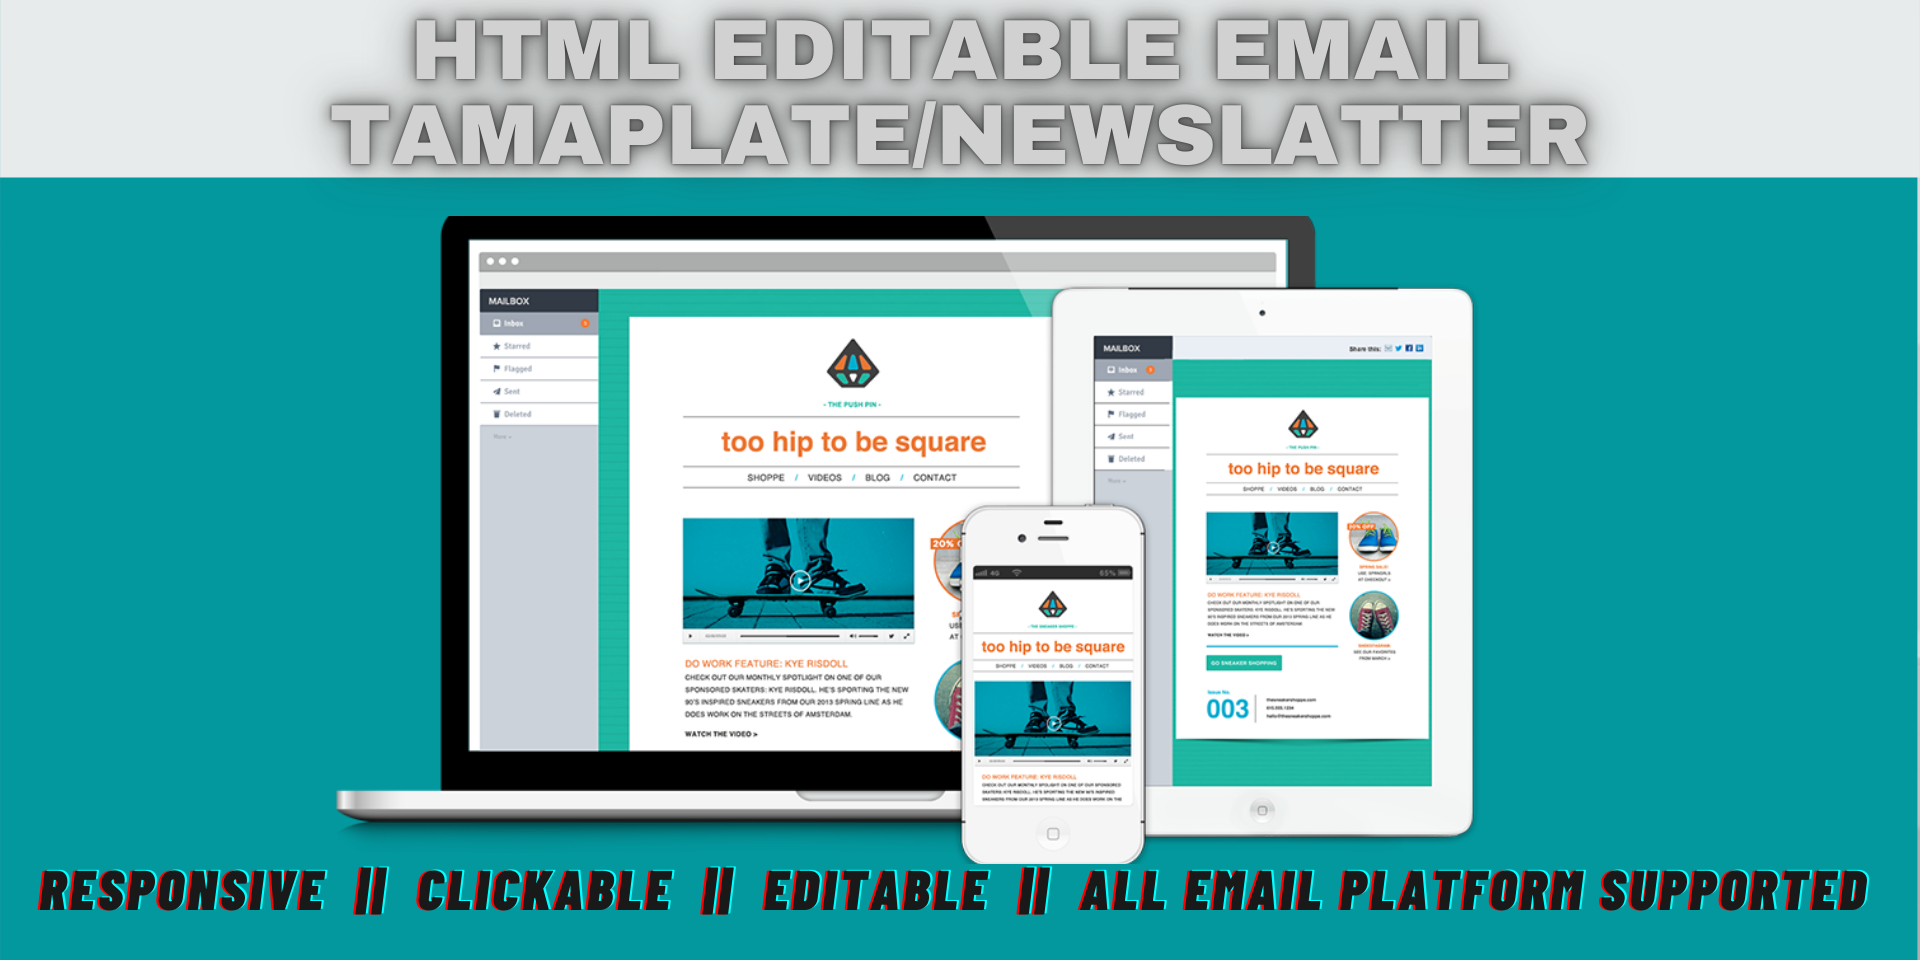 I can create an email template or email newsletter